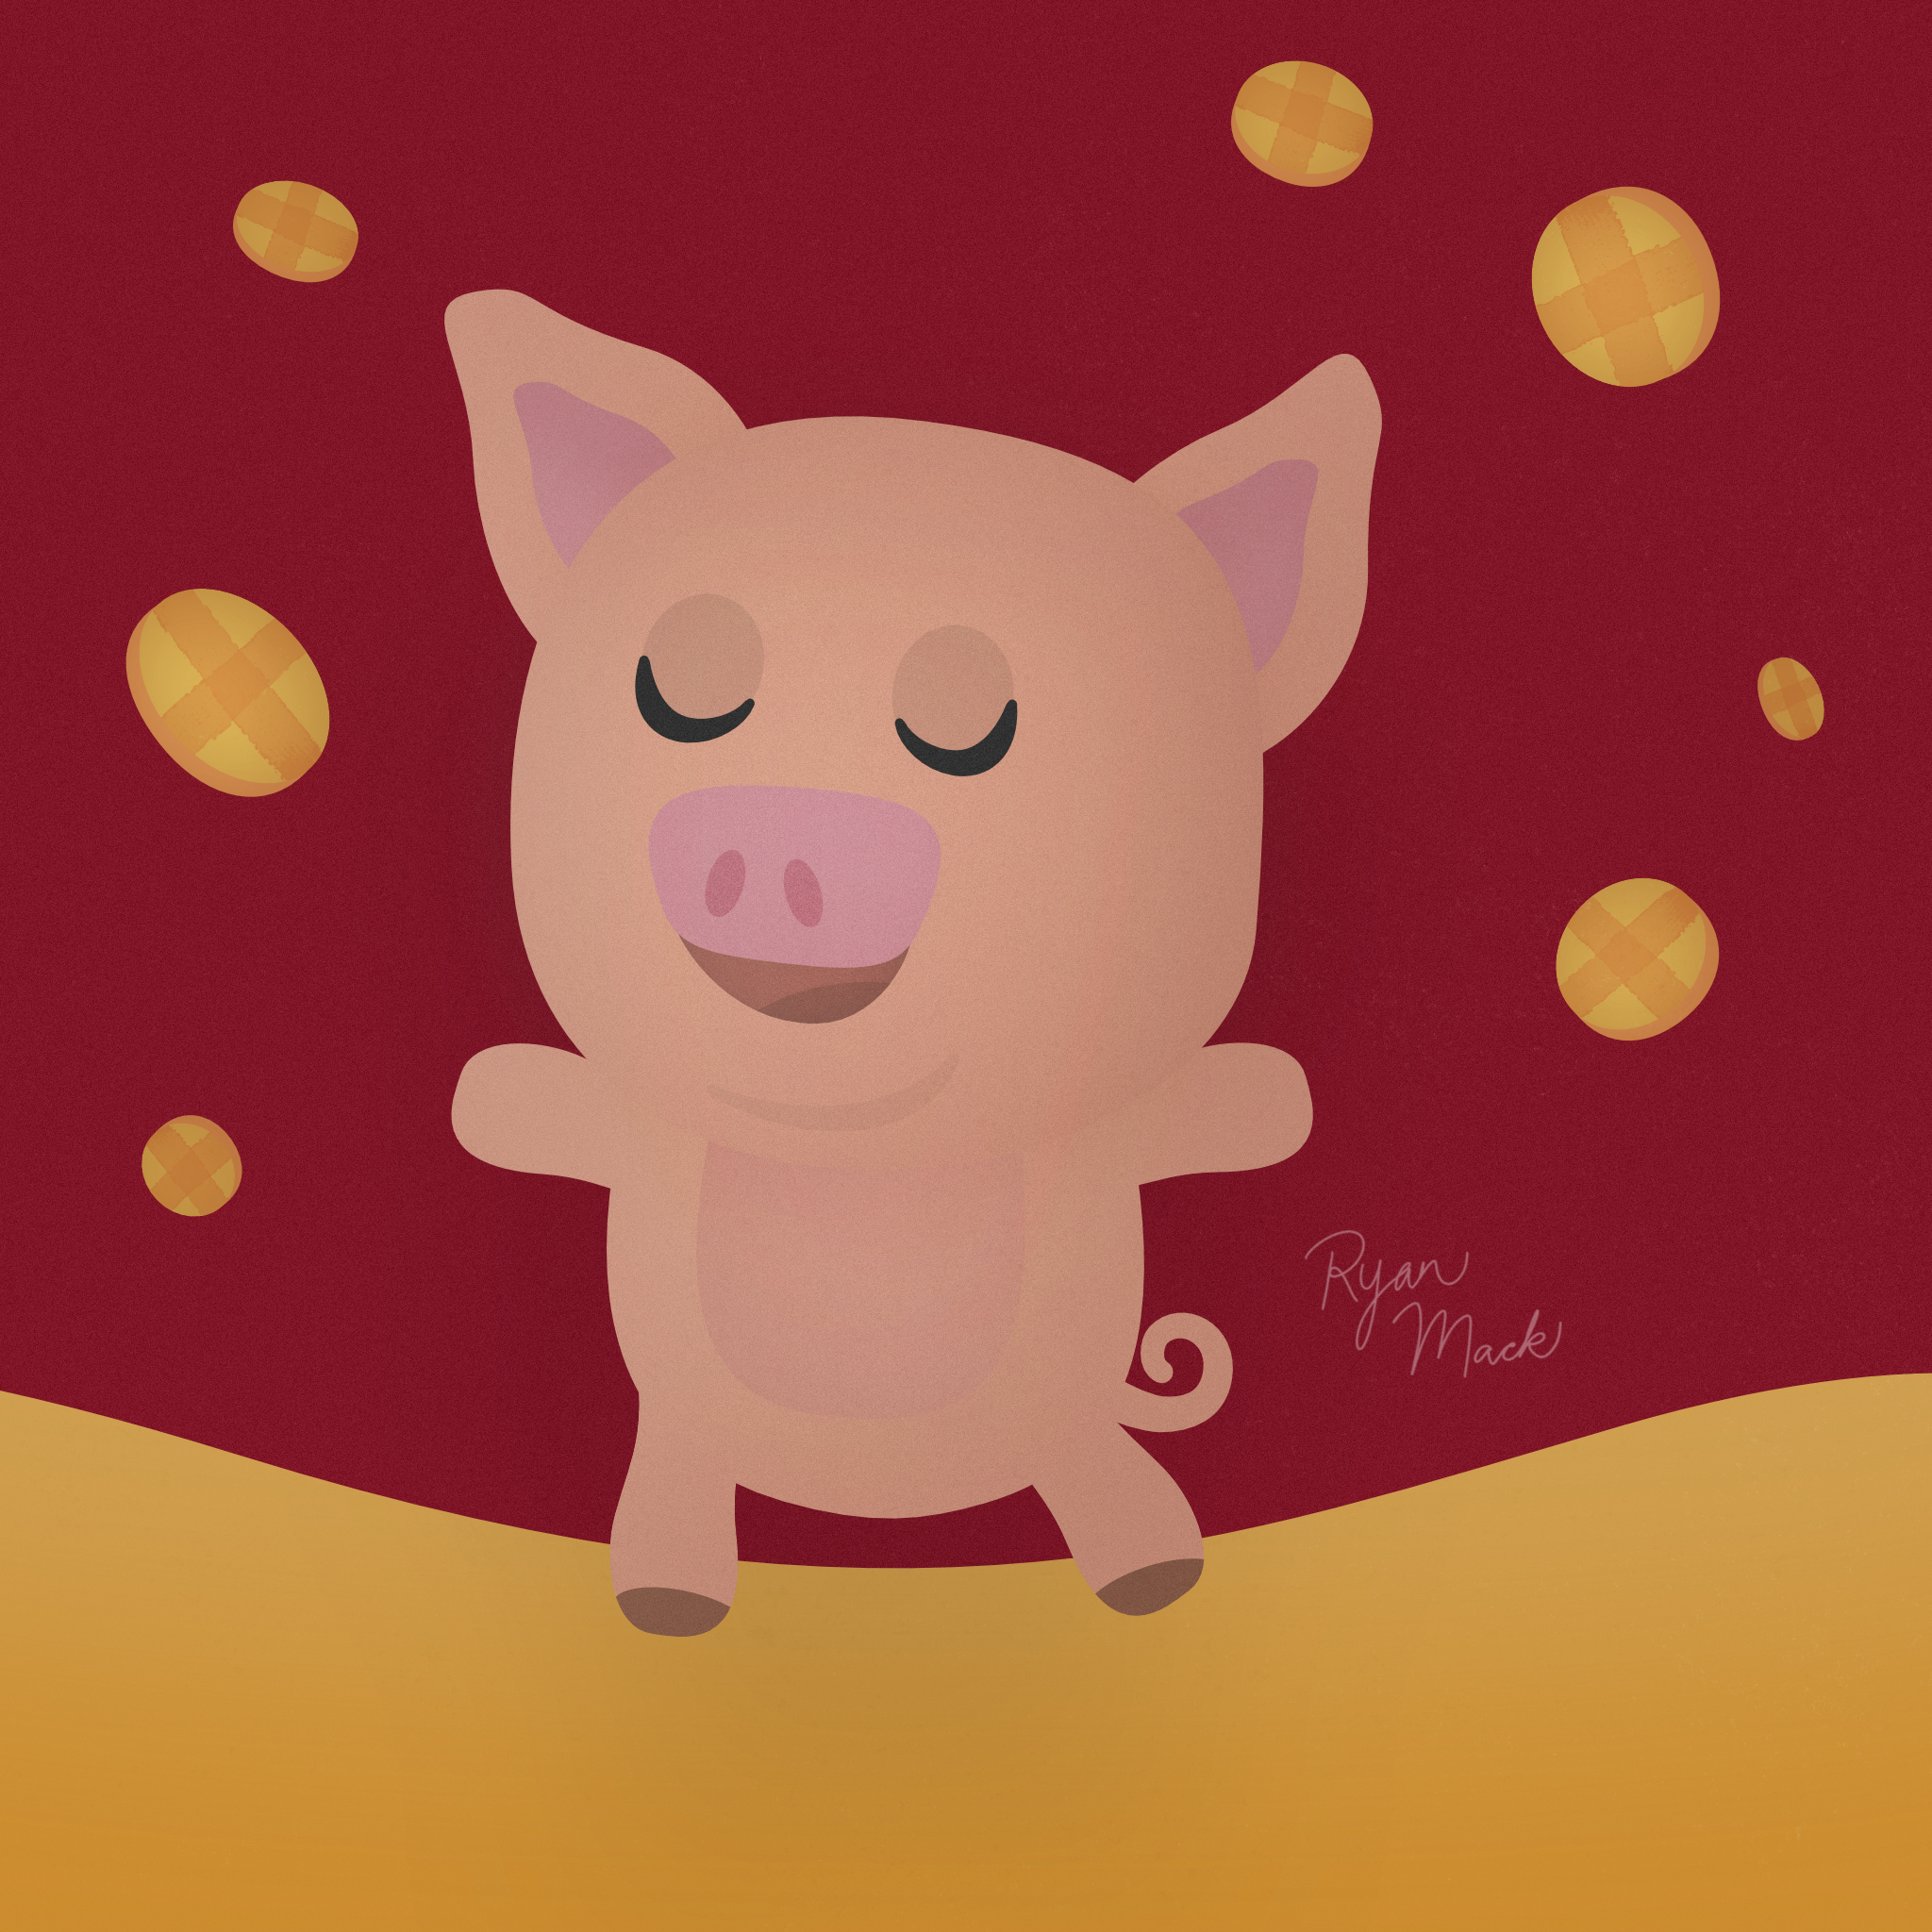 Lunar New Year Pig